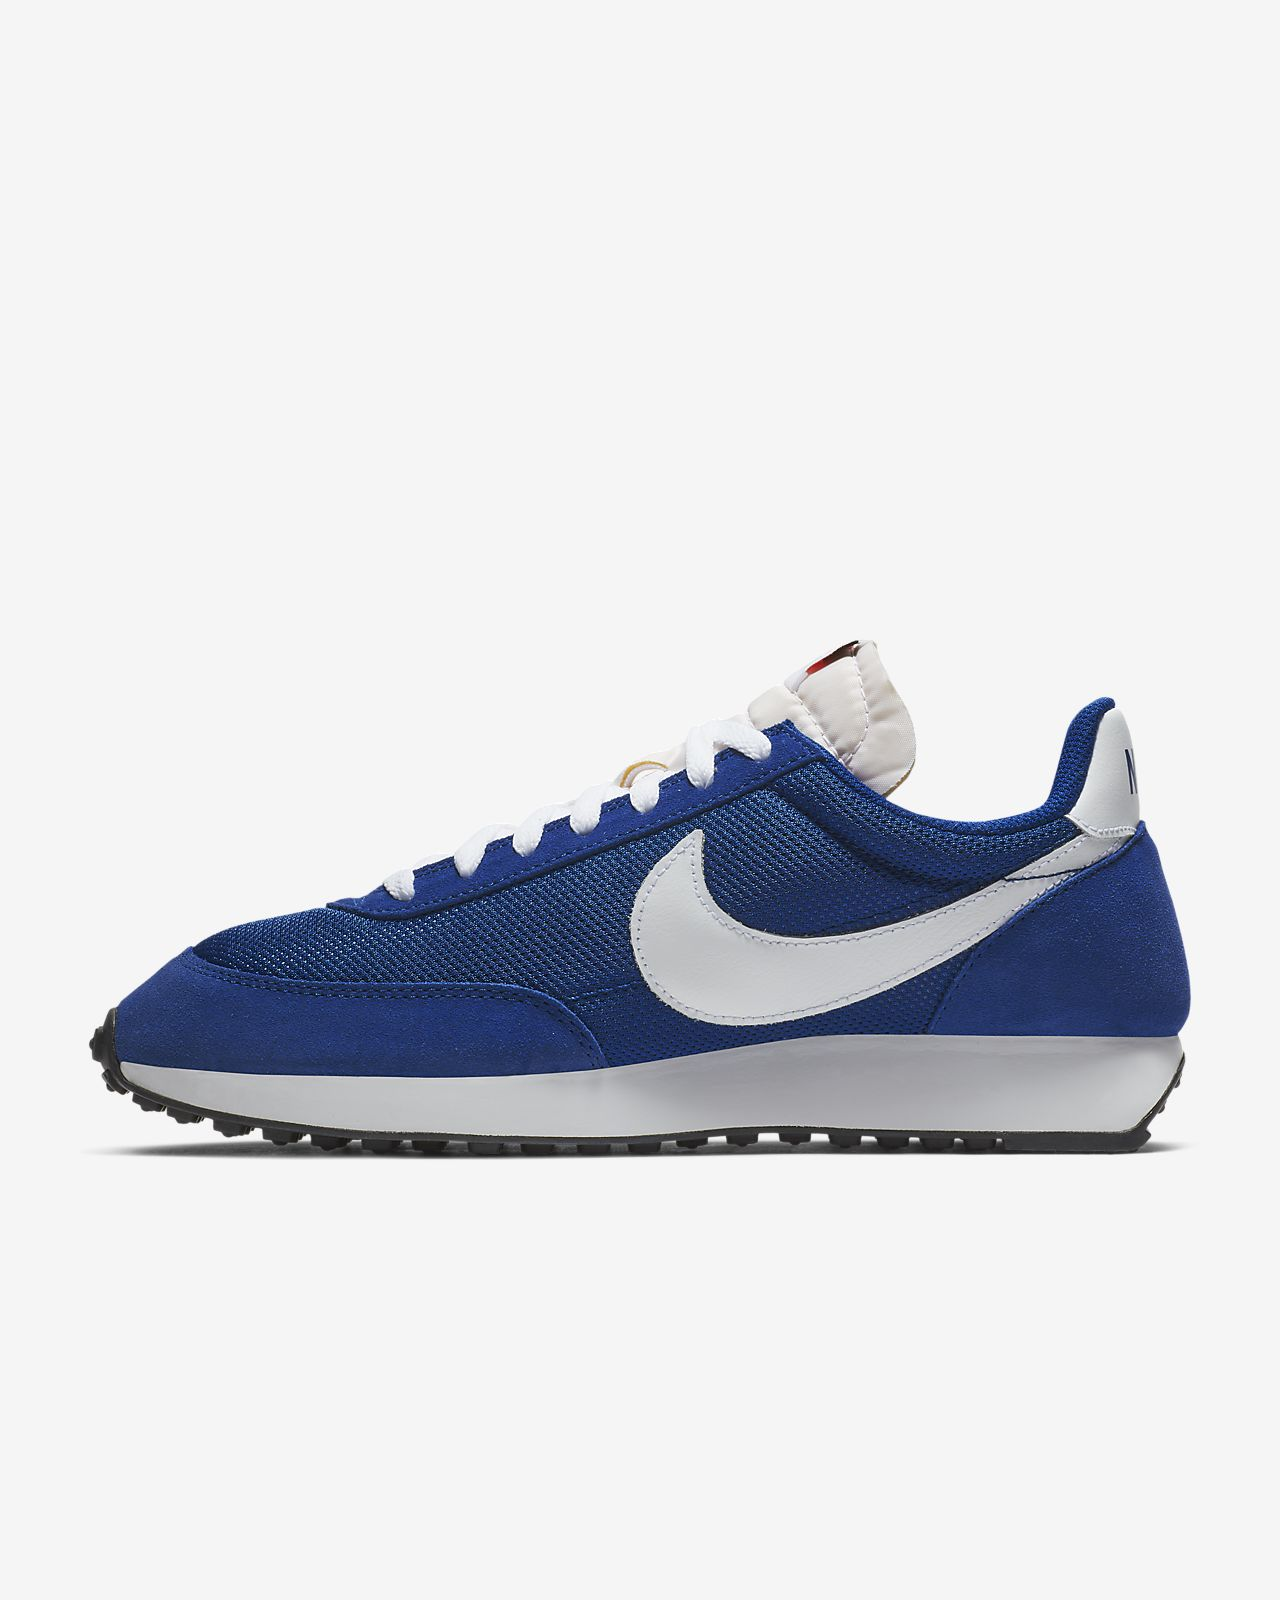 Nike Air Tailwind 79 Men's Shoe